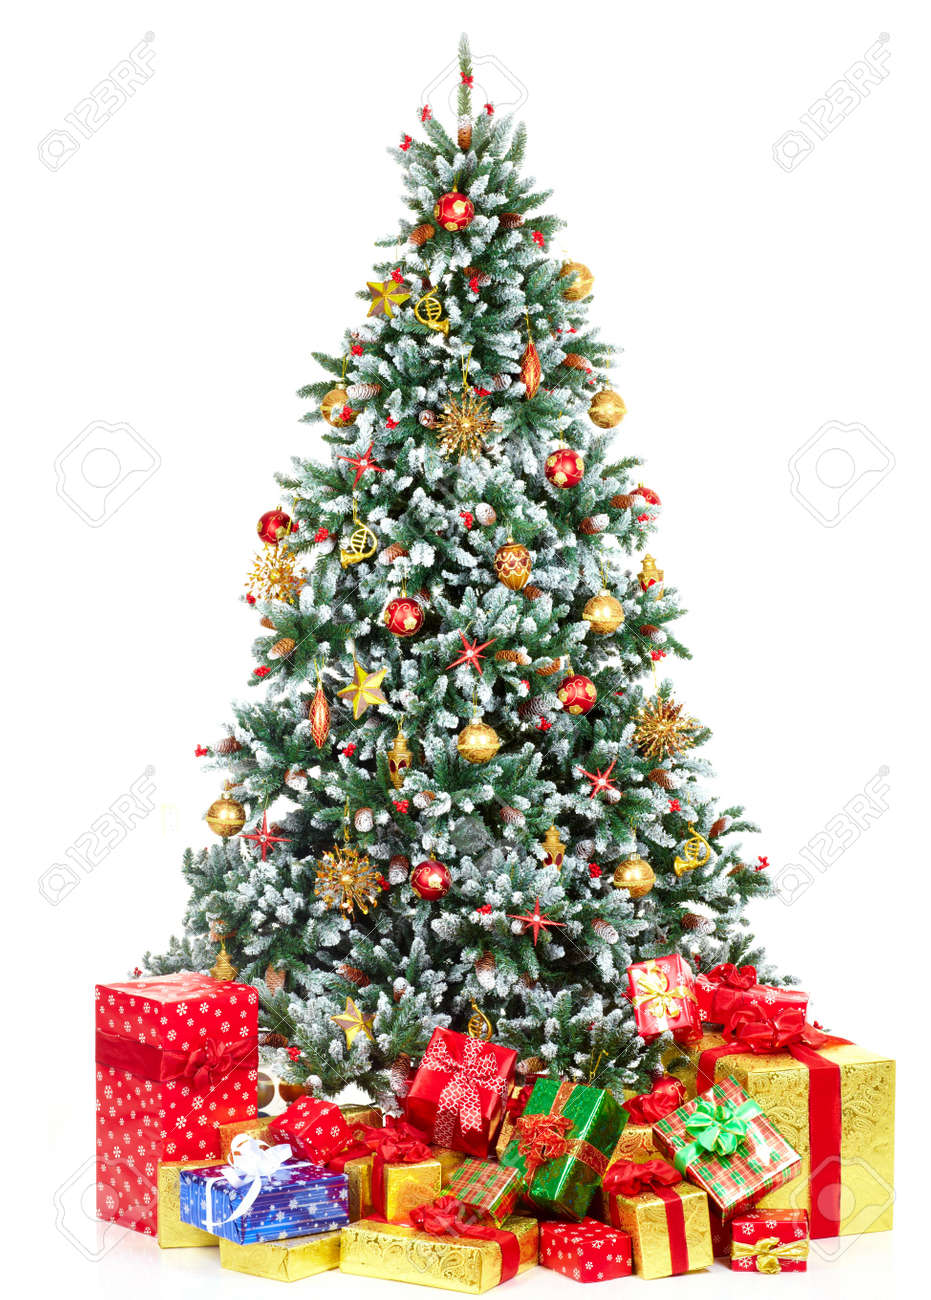 Christmas Tree Backgrounds.Christmas Tree And Gifts Over White Background